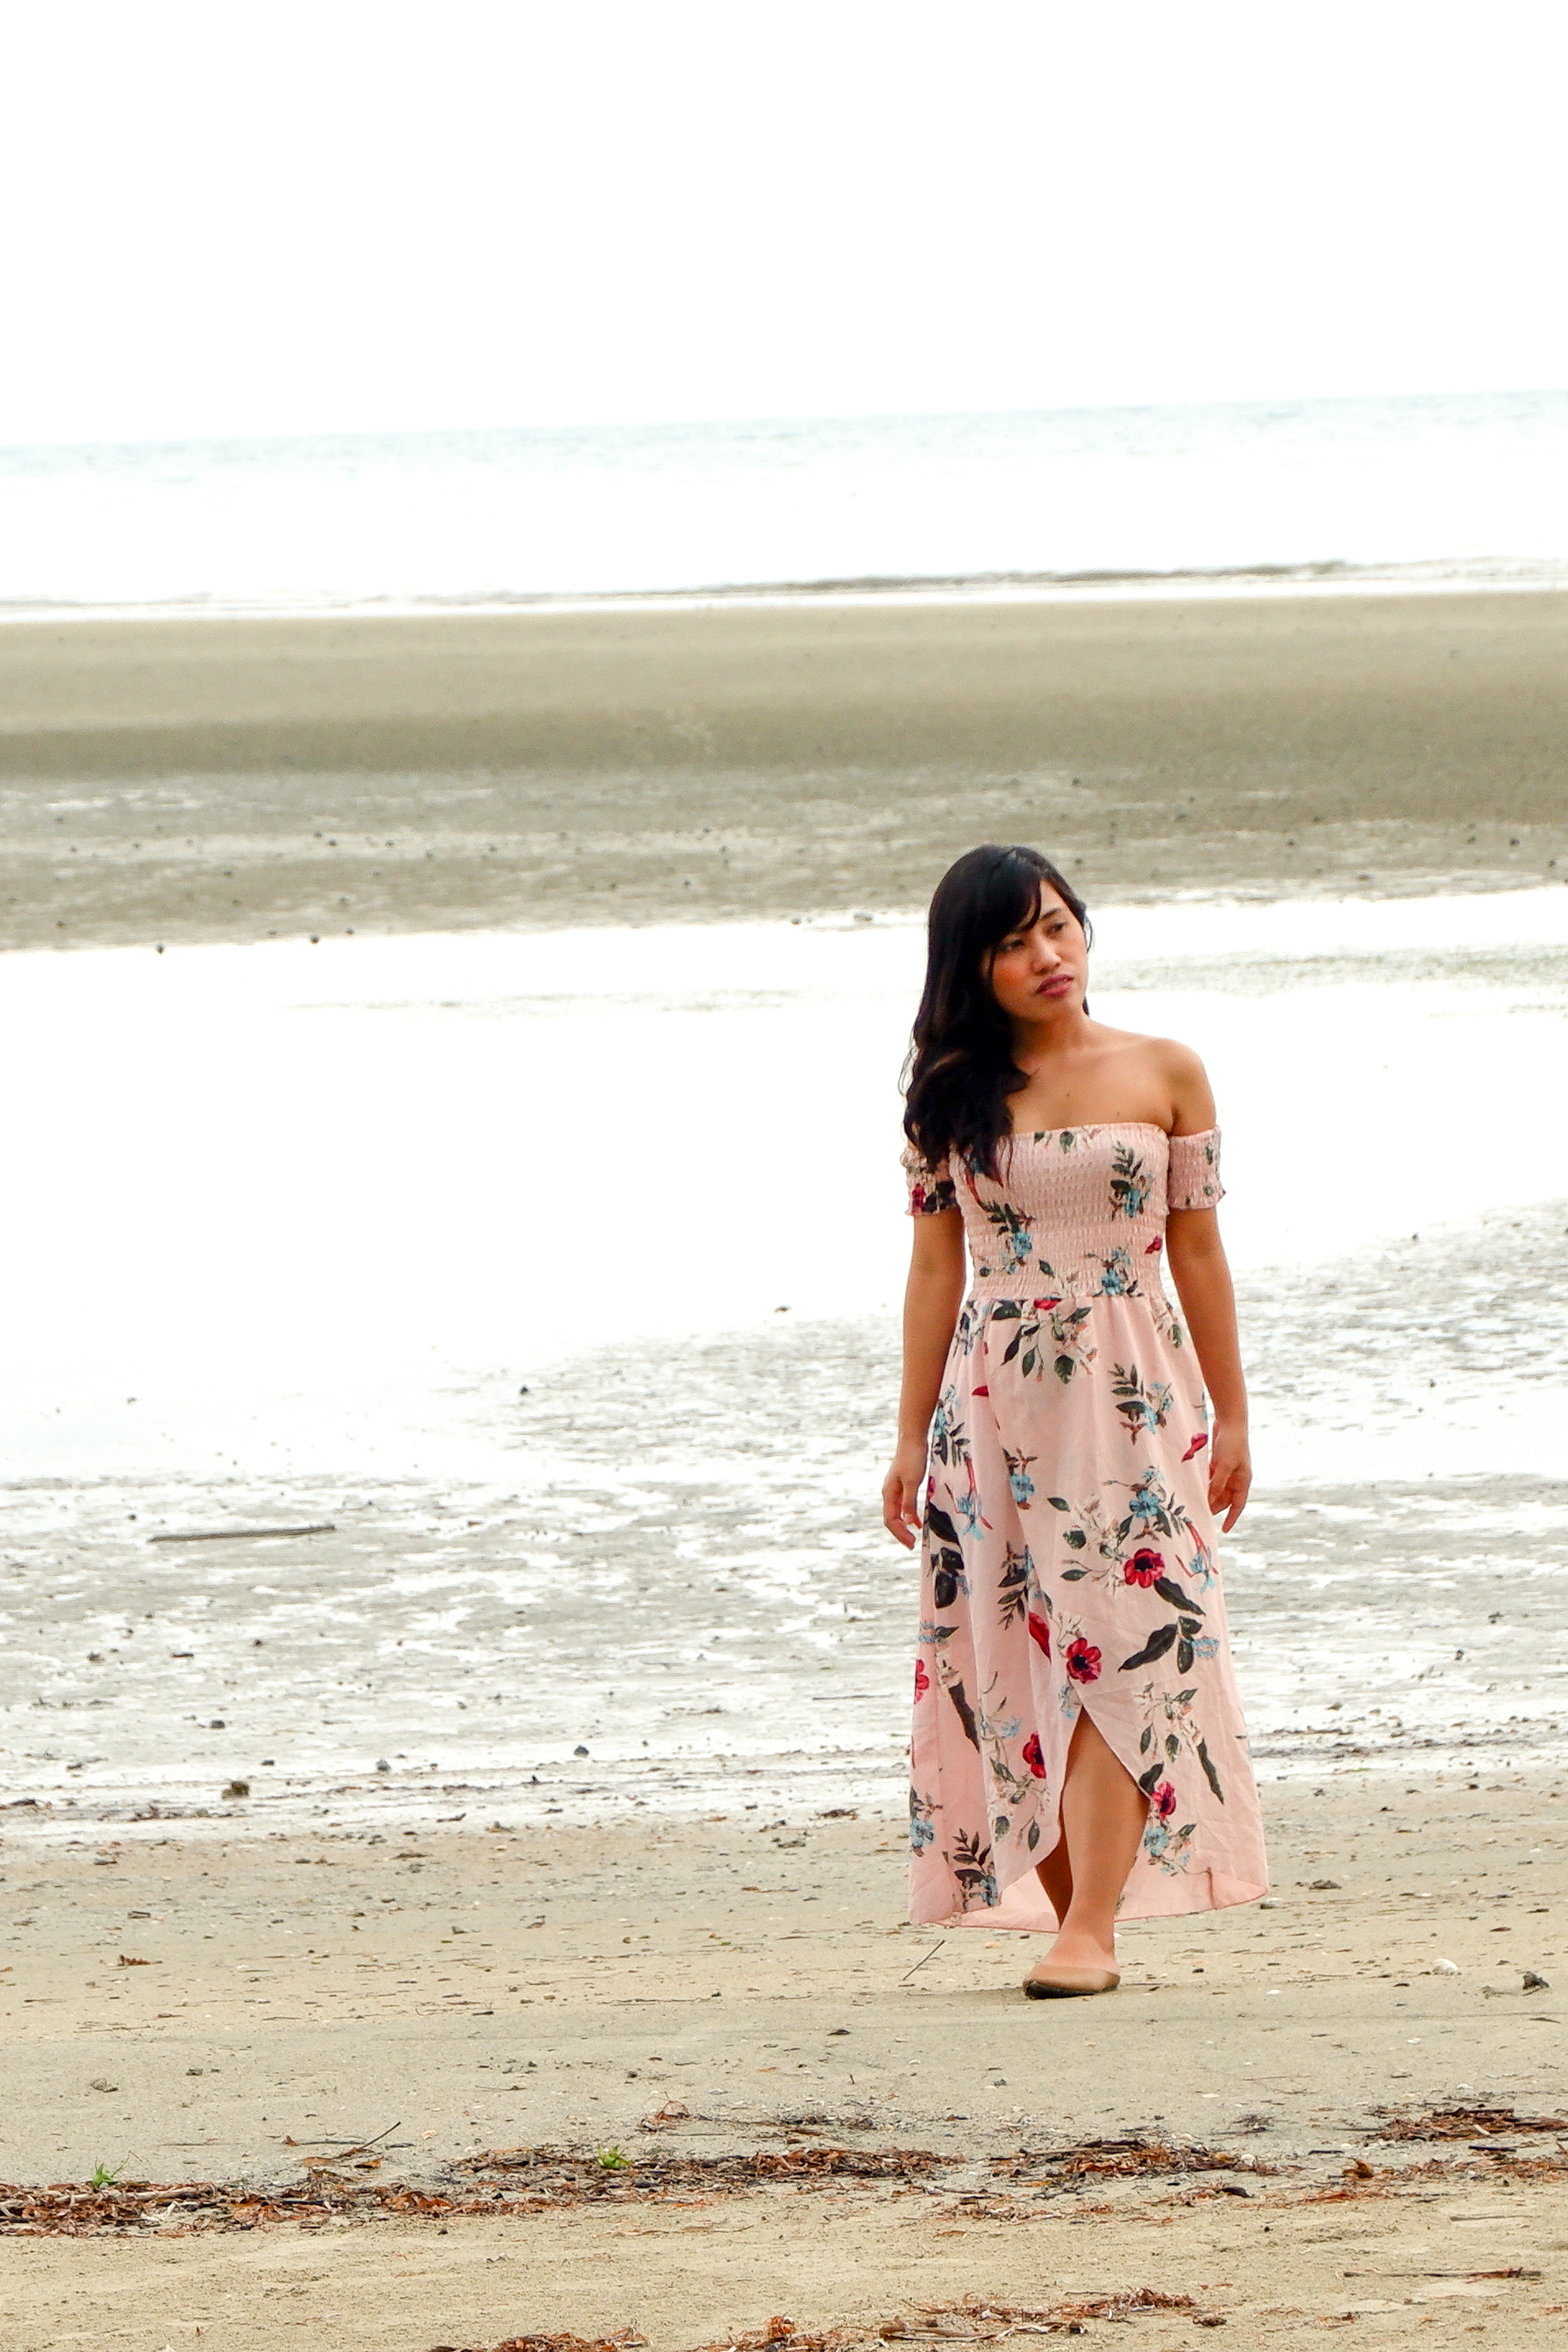 A Girl in A Pink Dress in  a Low-Tide Shore of Astoria Palawan